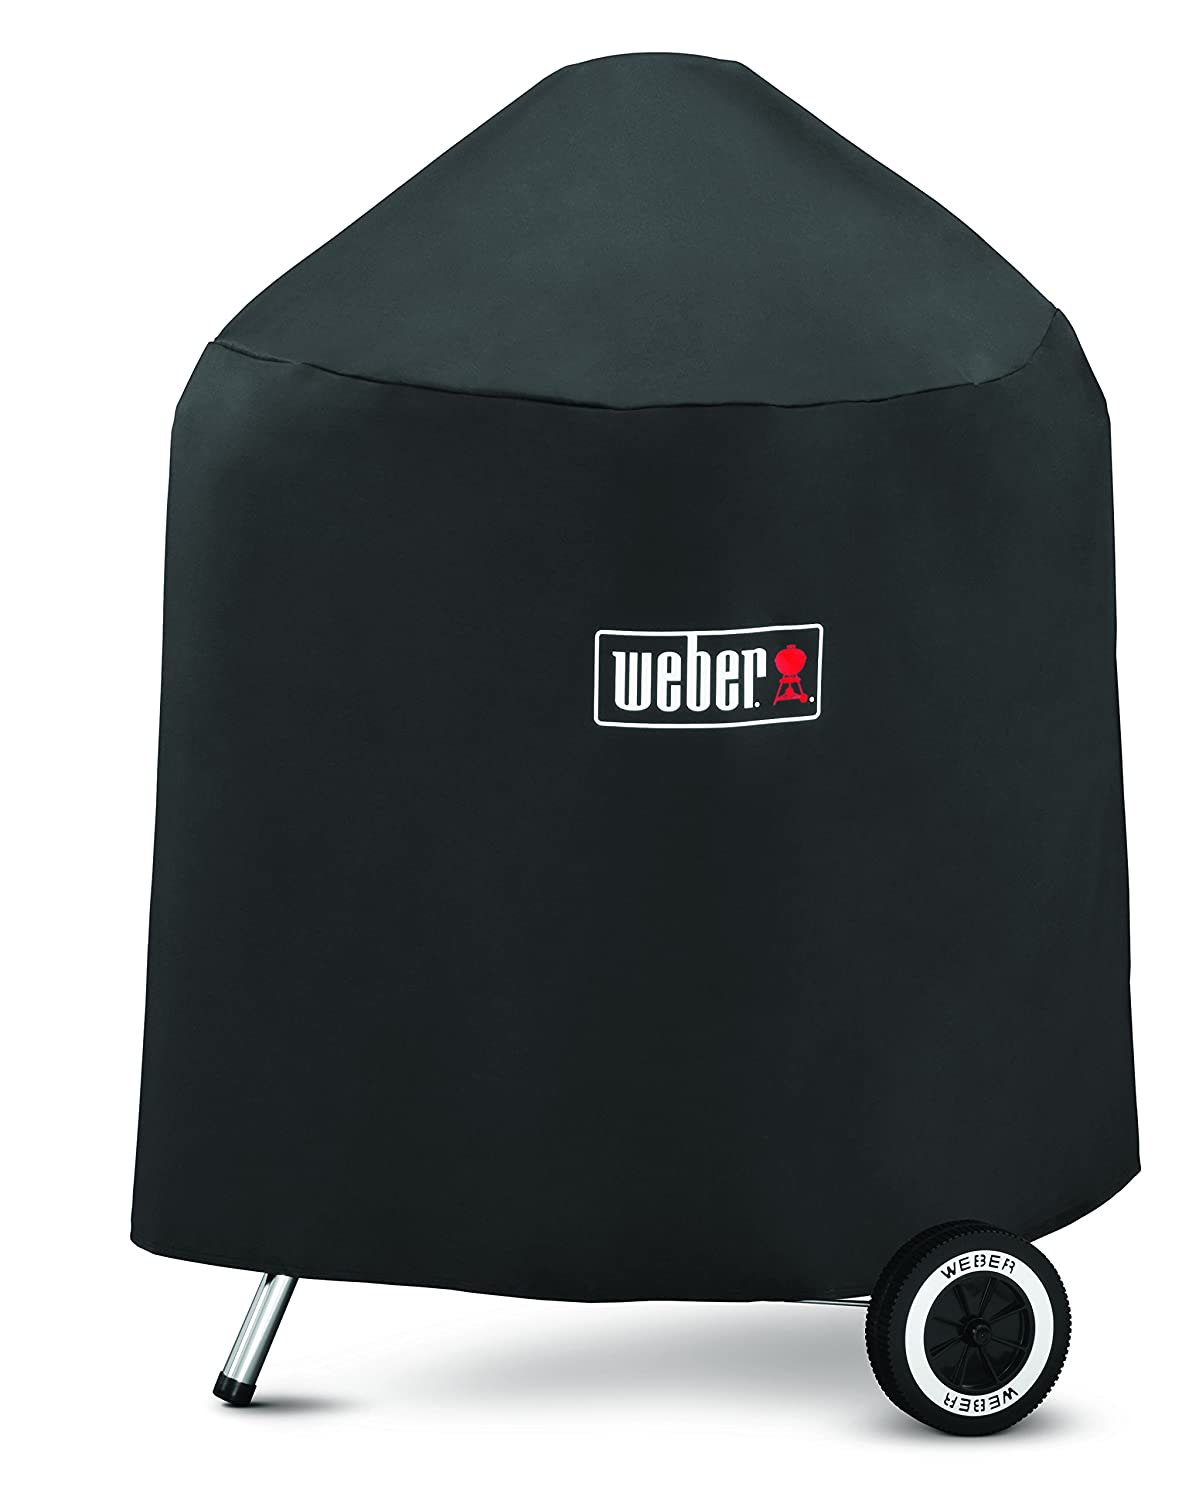 Weber 7149 Grill Cover with Storage Bag Charcoal Grills, 22.5-Inch